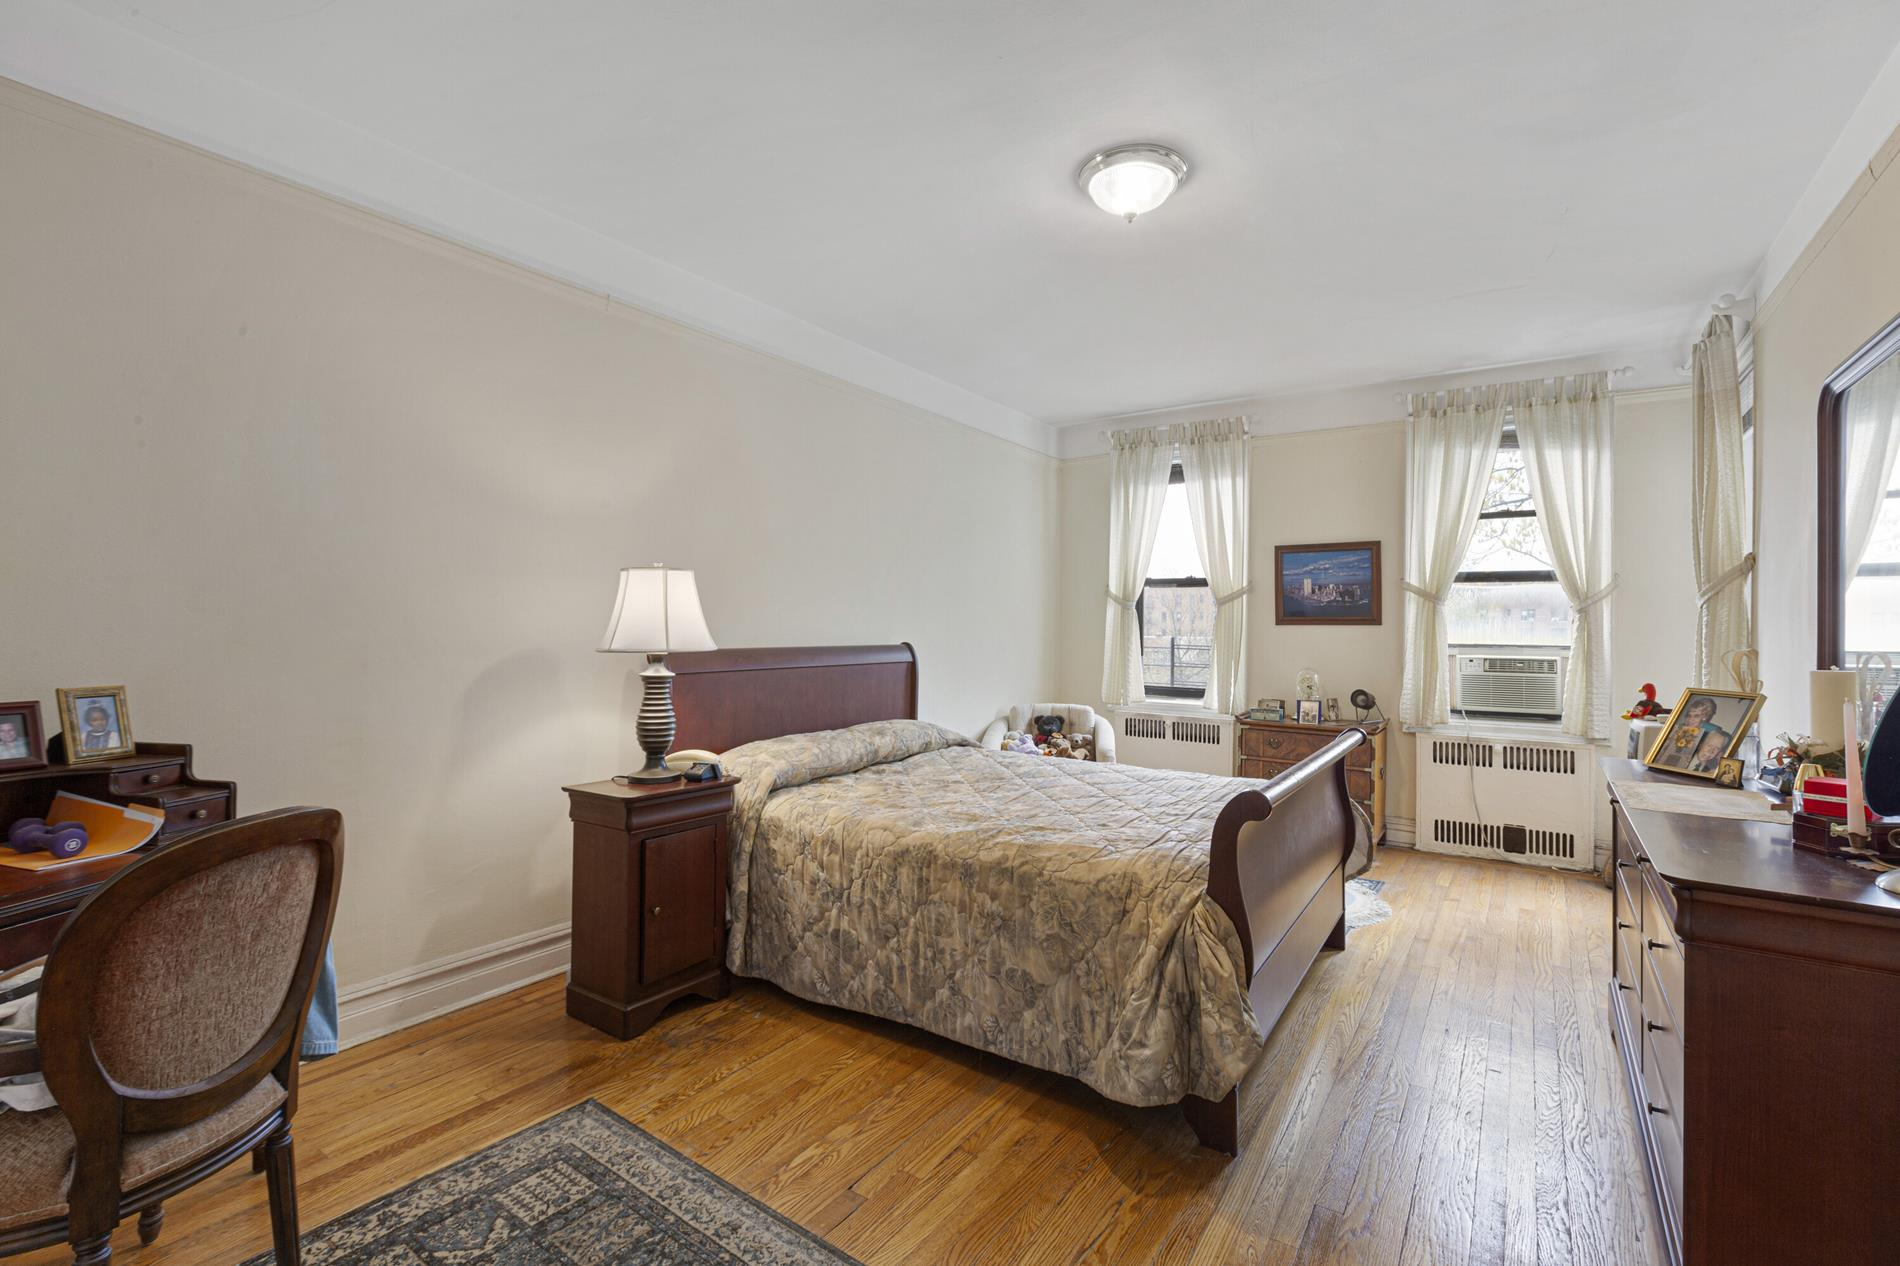 35-06 88th Street Jackson Heights Queens NY 11414